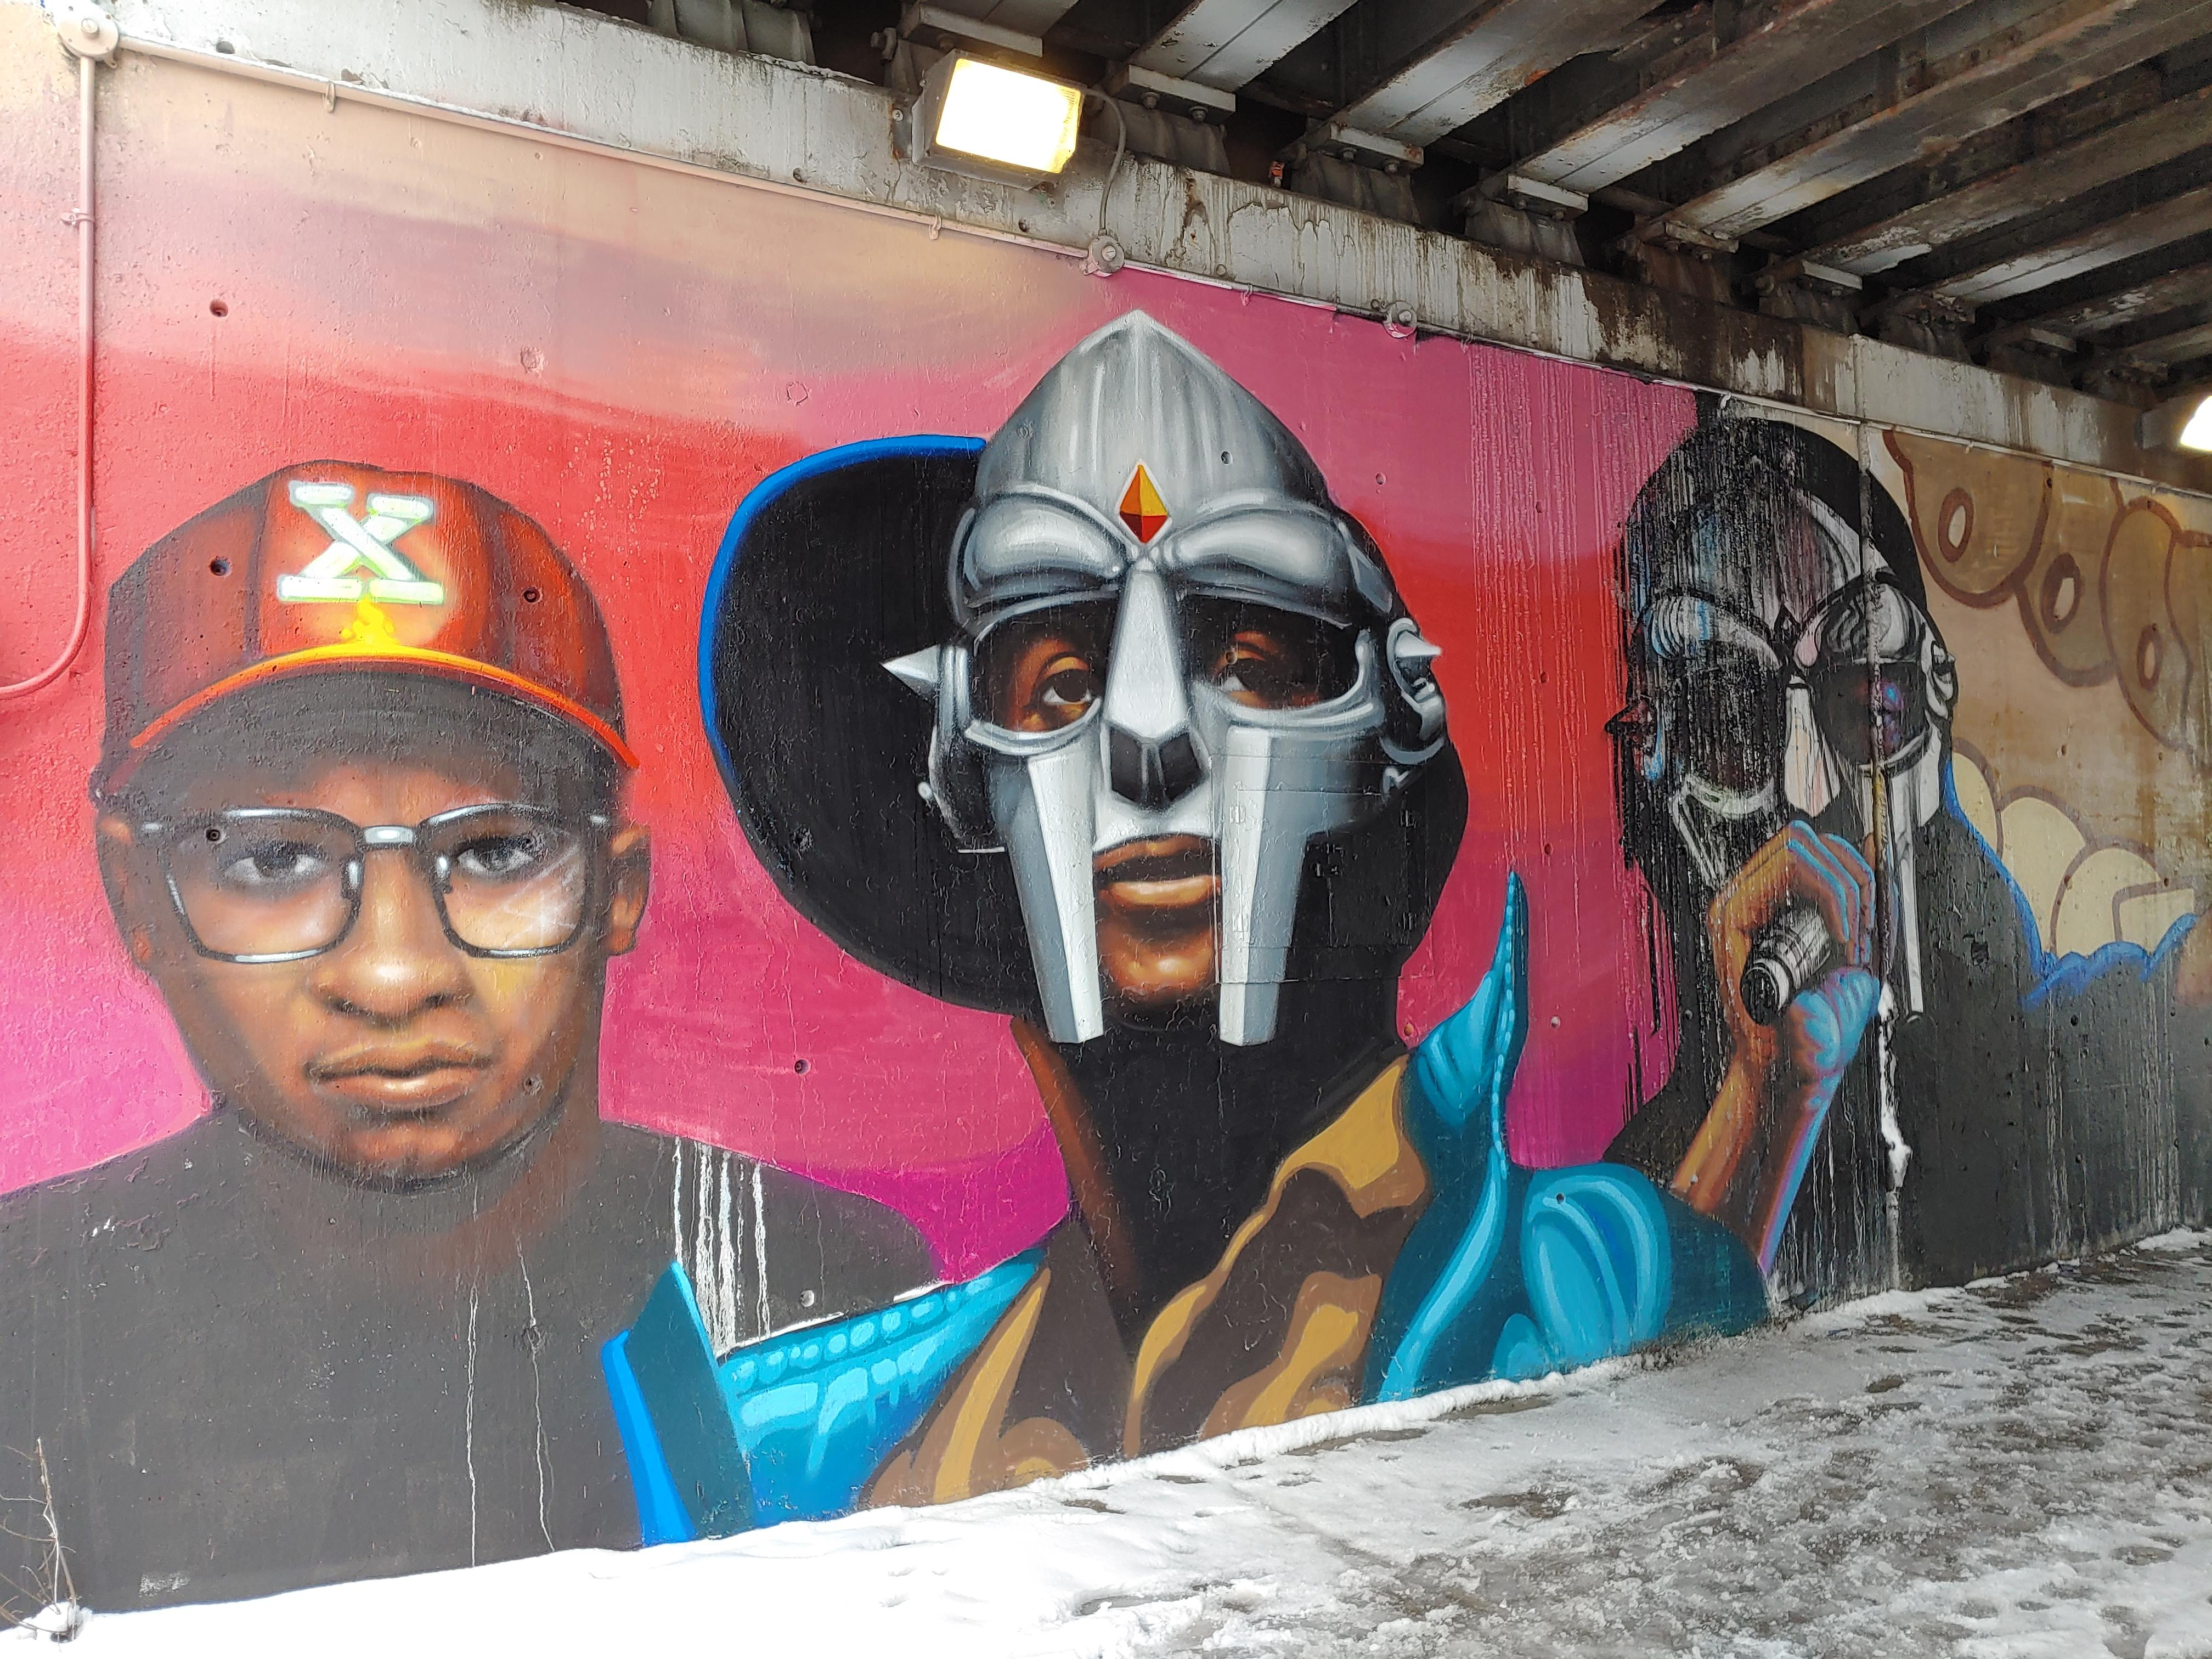 This new mural near Hubbard Street in the West Loop by Chicago artist Rahmaan Statik shows three versions of Daniel Dumile, the late rapper and hip-hop artist better known as MF DOOM.